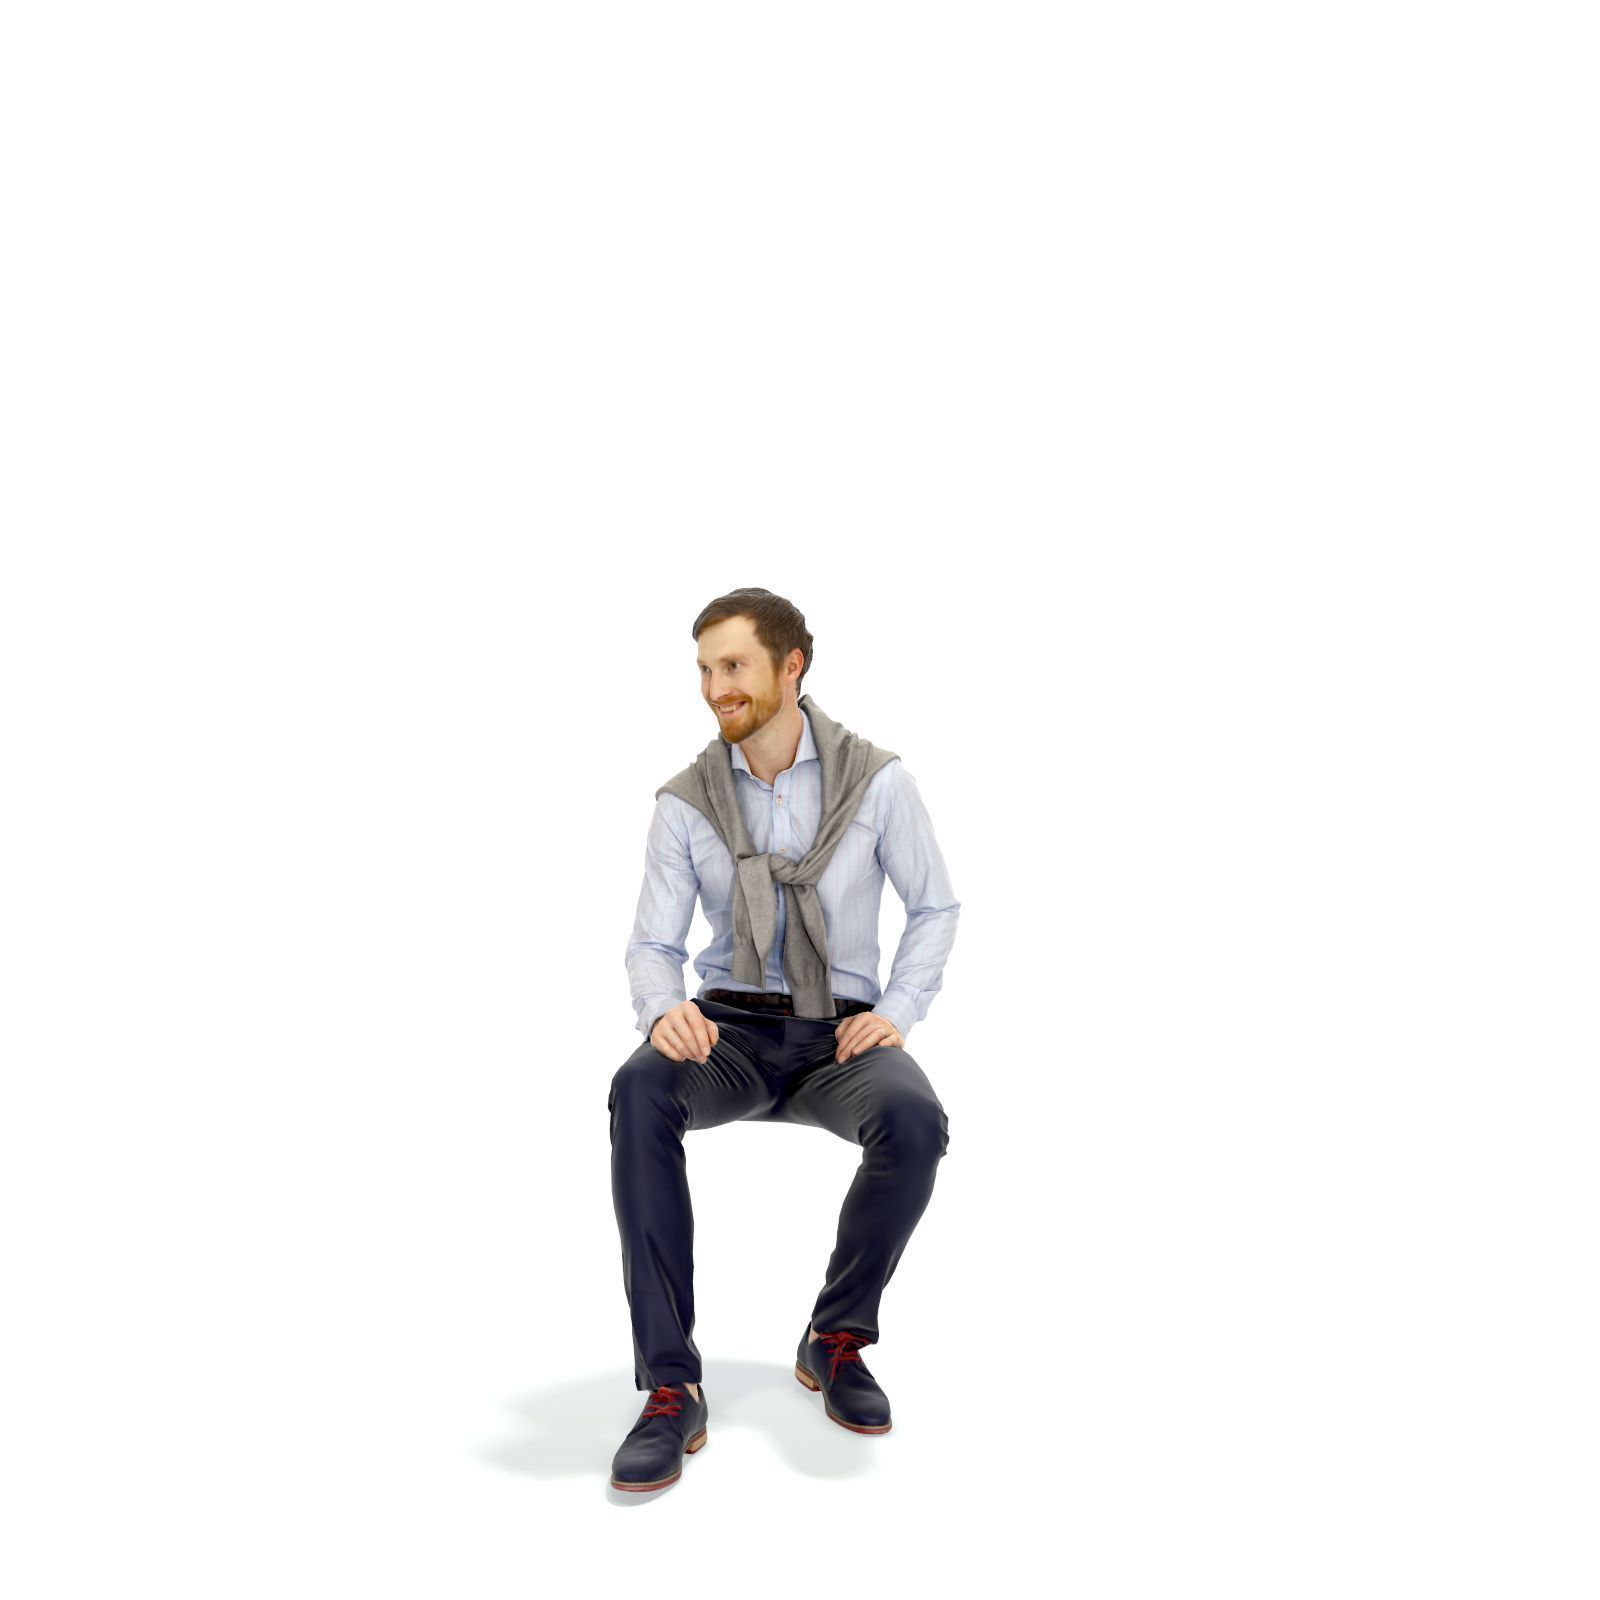 Sitting smiling Elegant Man EMan0313-HD2-O04P01-S